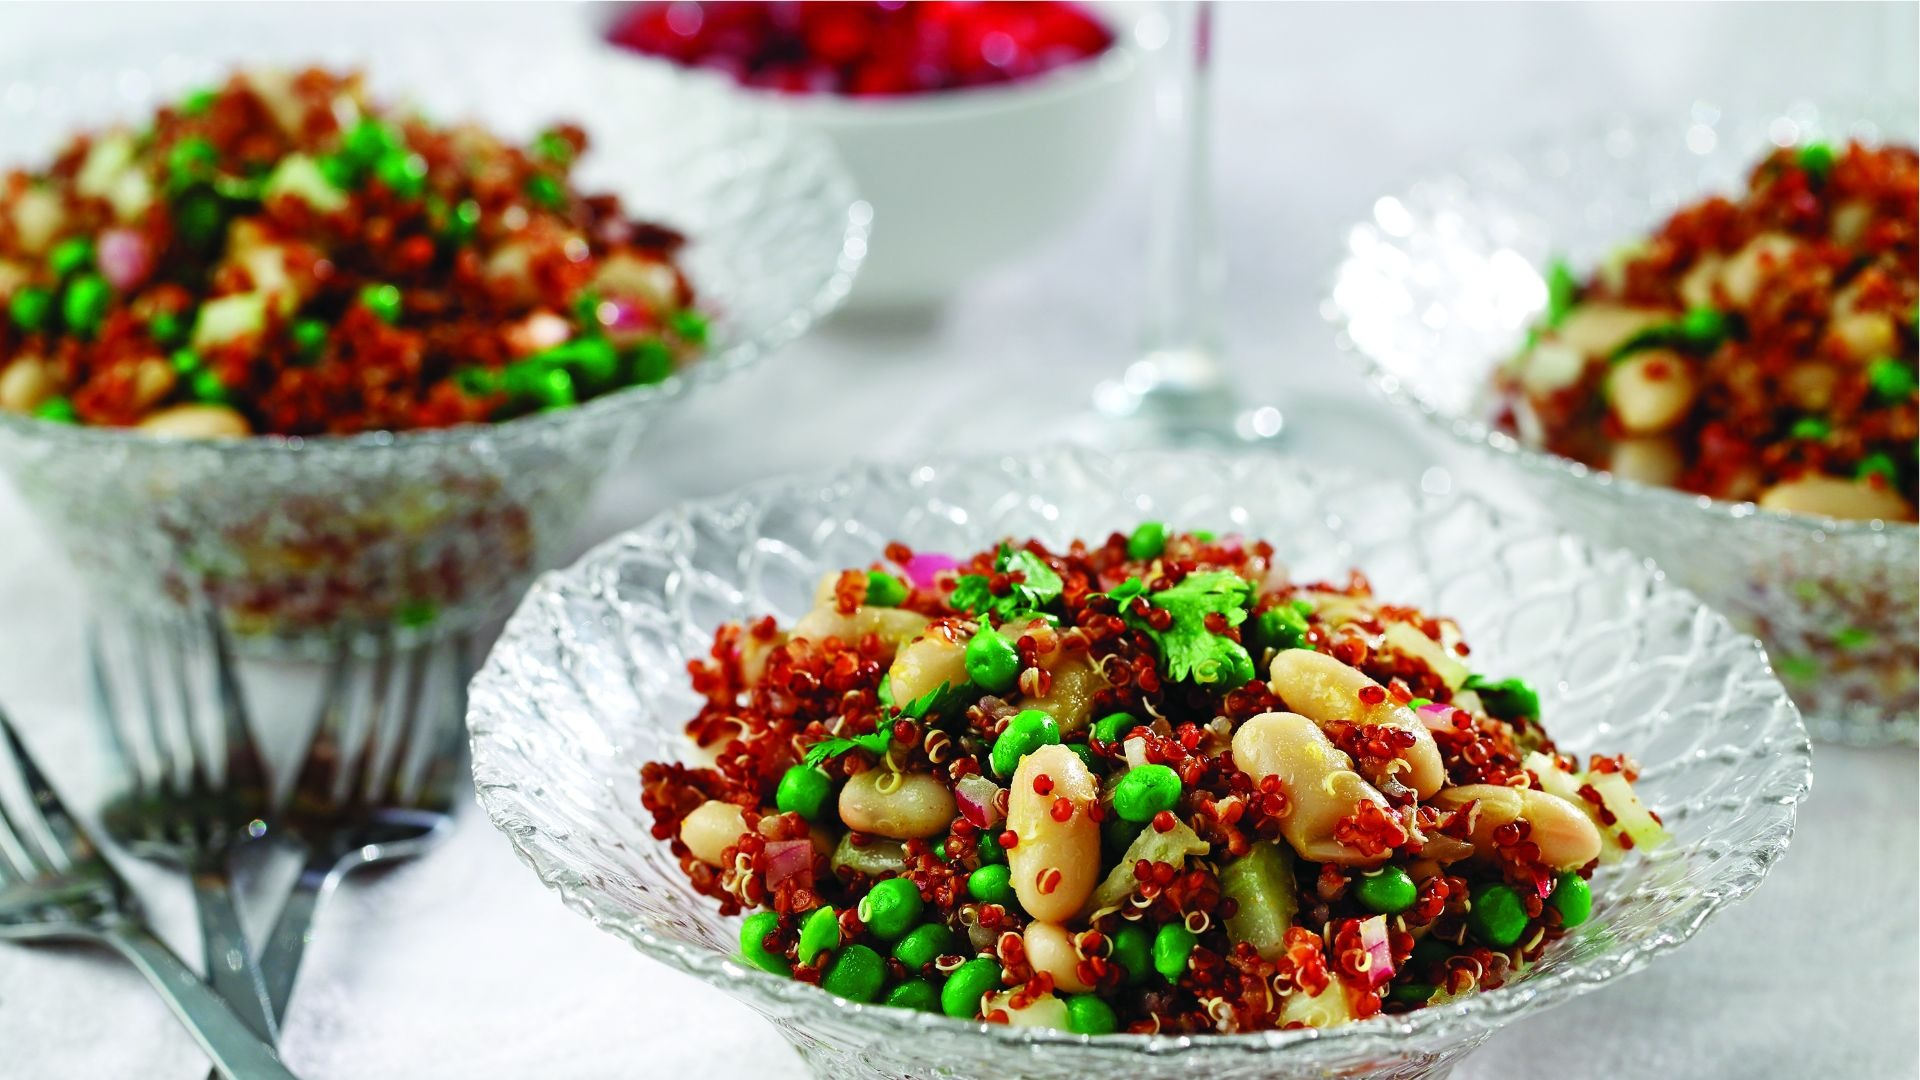 Glass bowls filled with quinoa, cannellini beans, peas and cilantro